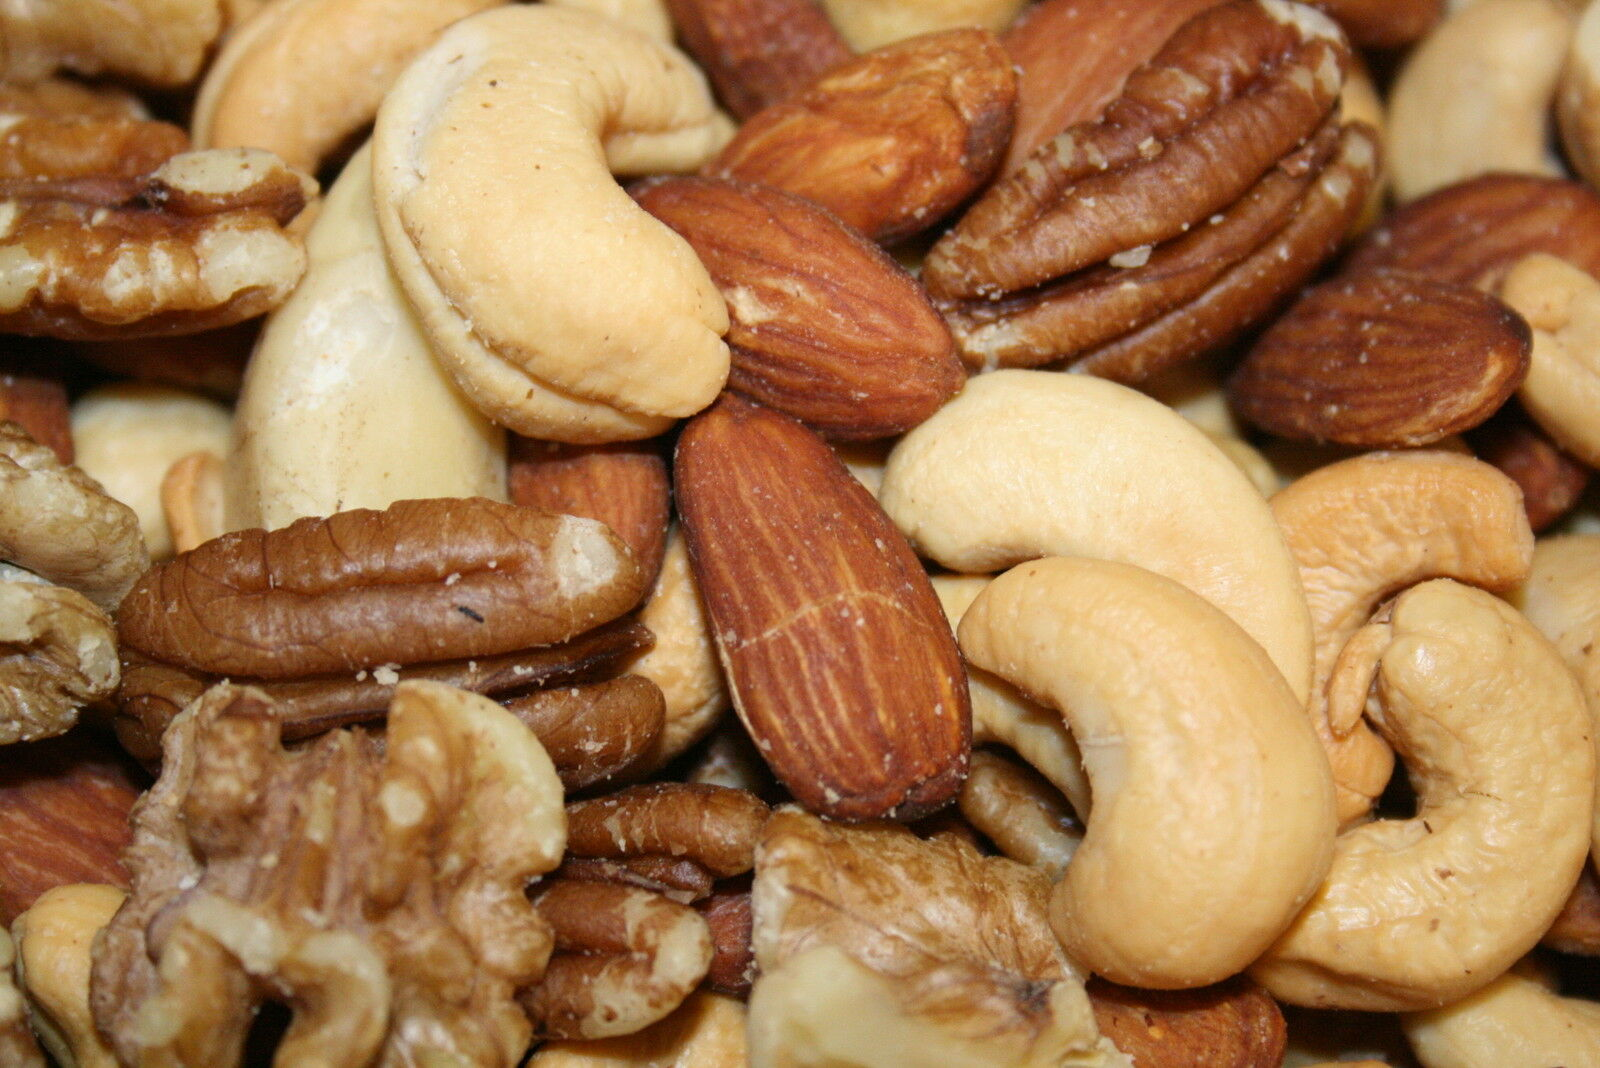 SweetGourmet Deluxe Mixed Nuts (Roasted & Salted), 1Lb